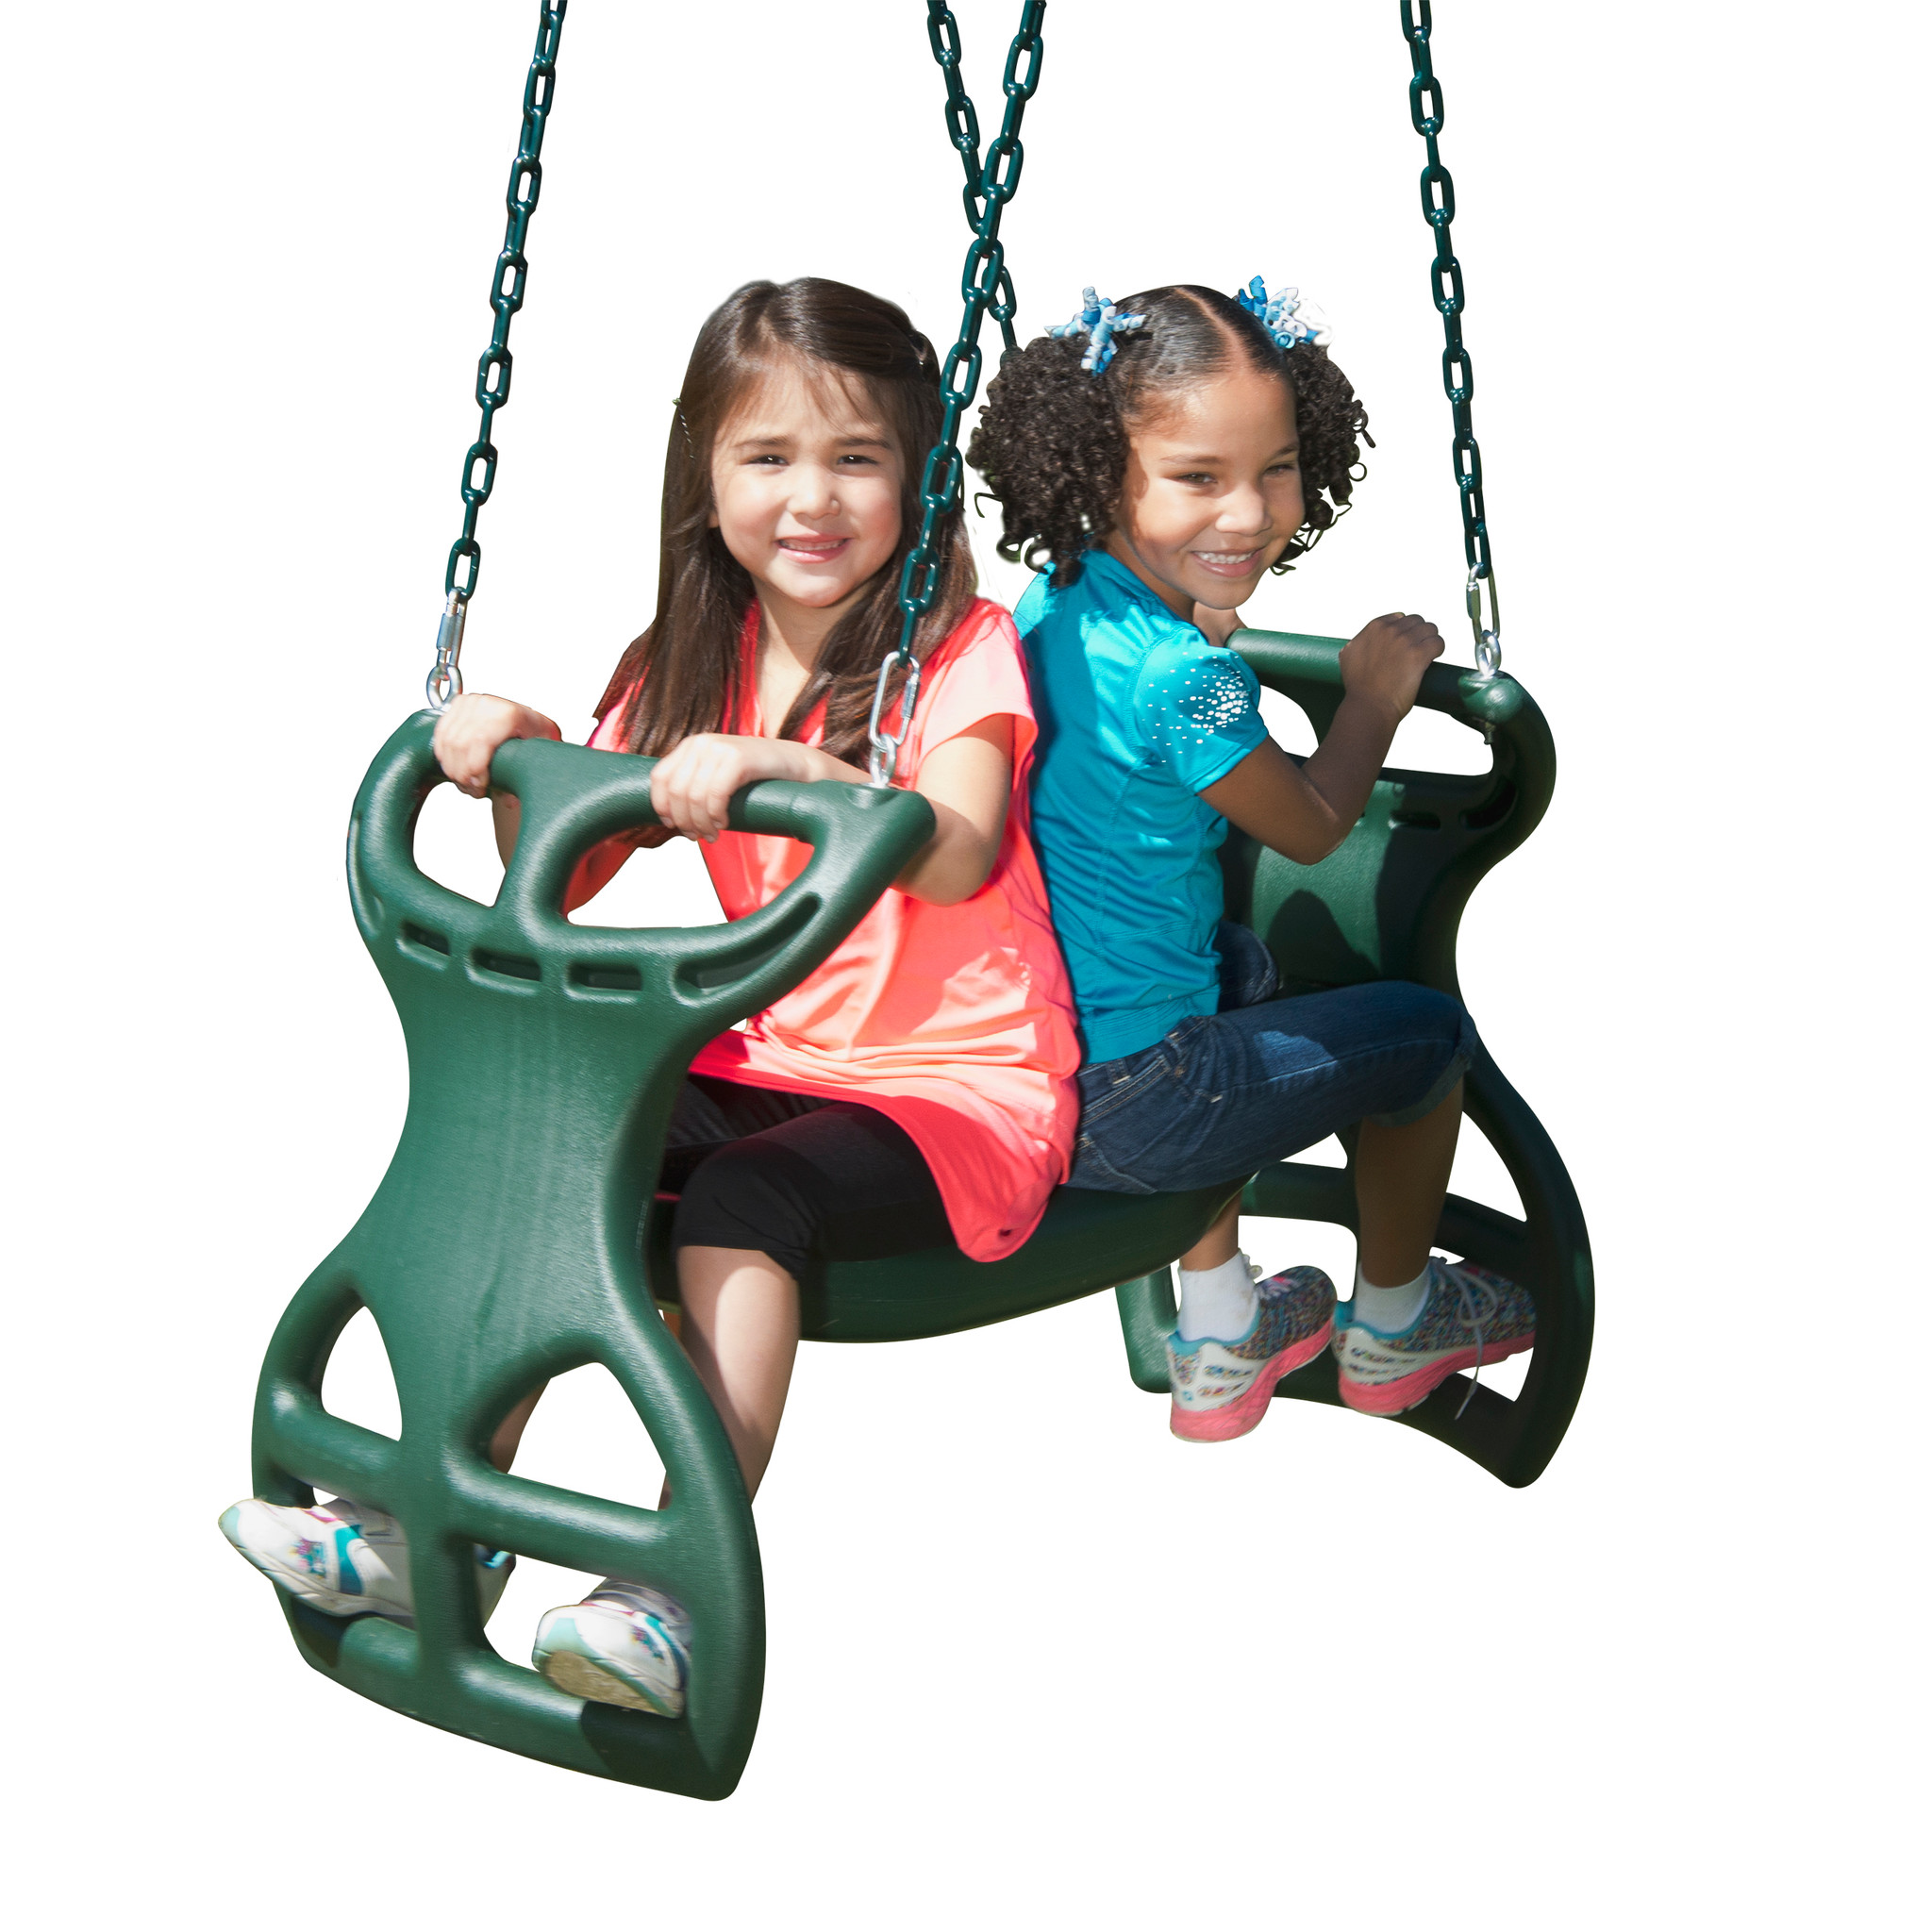 Studio shot of Double Glider Swing from PlayNation.